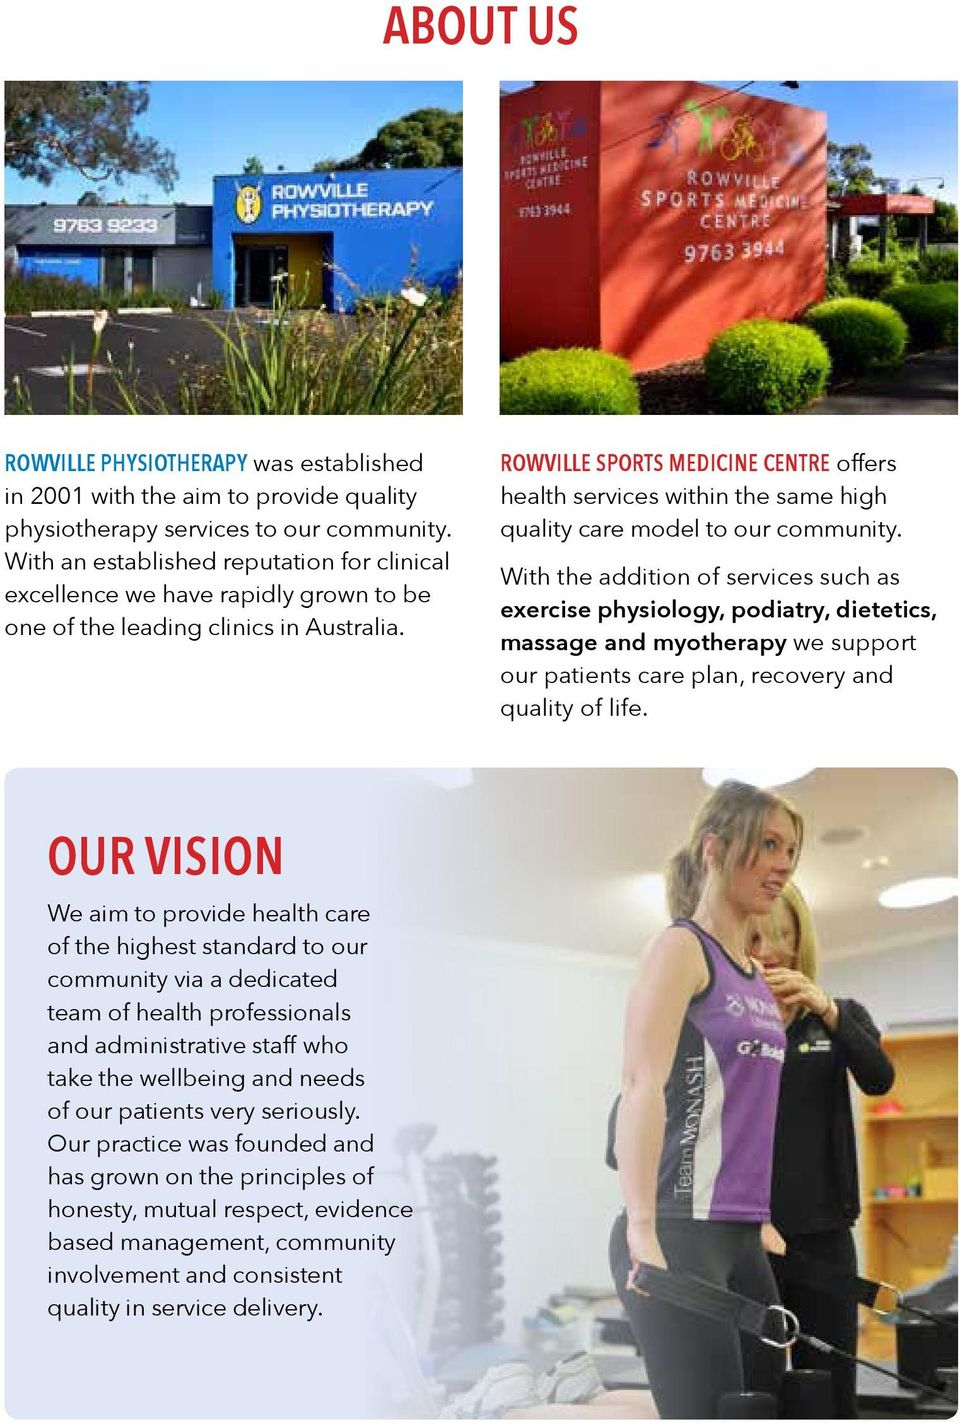 ROWVILLE SPORTS MEDICINE CENTRE offers health services within the same high quality care model to our community.